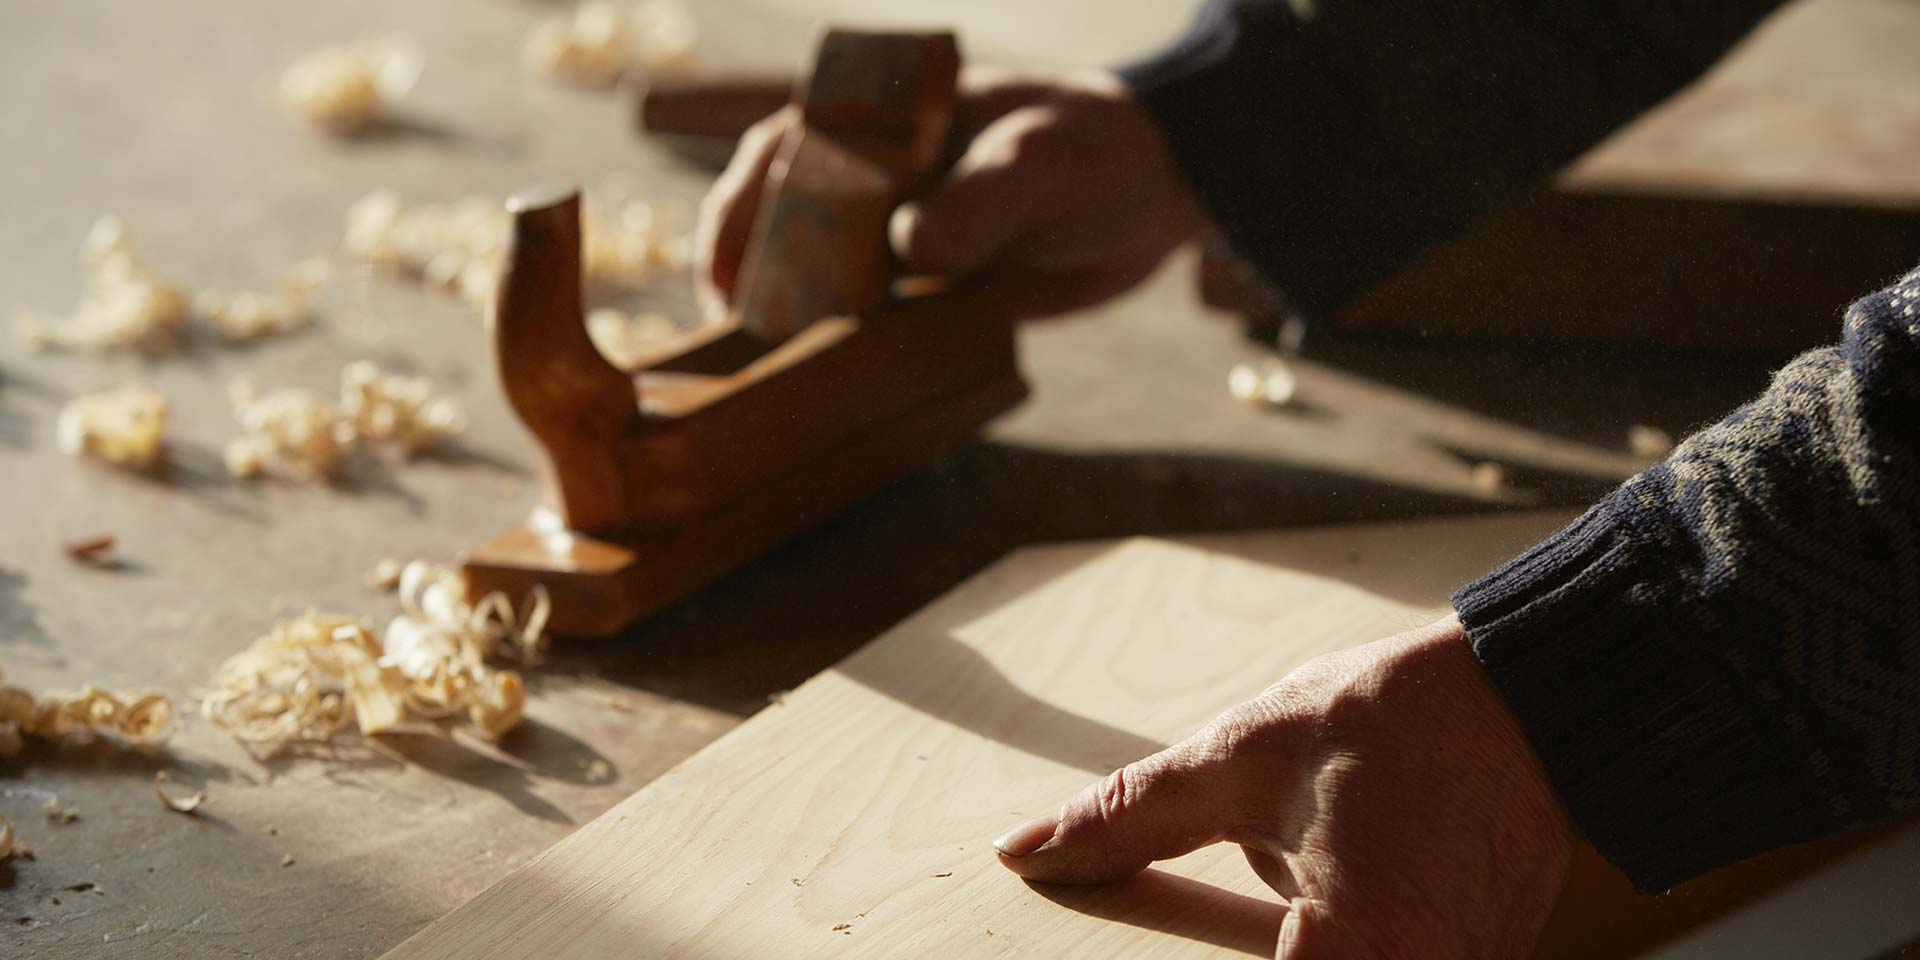 Wood plane with wood shavings and worker's hands